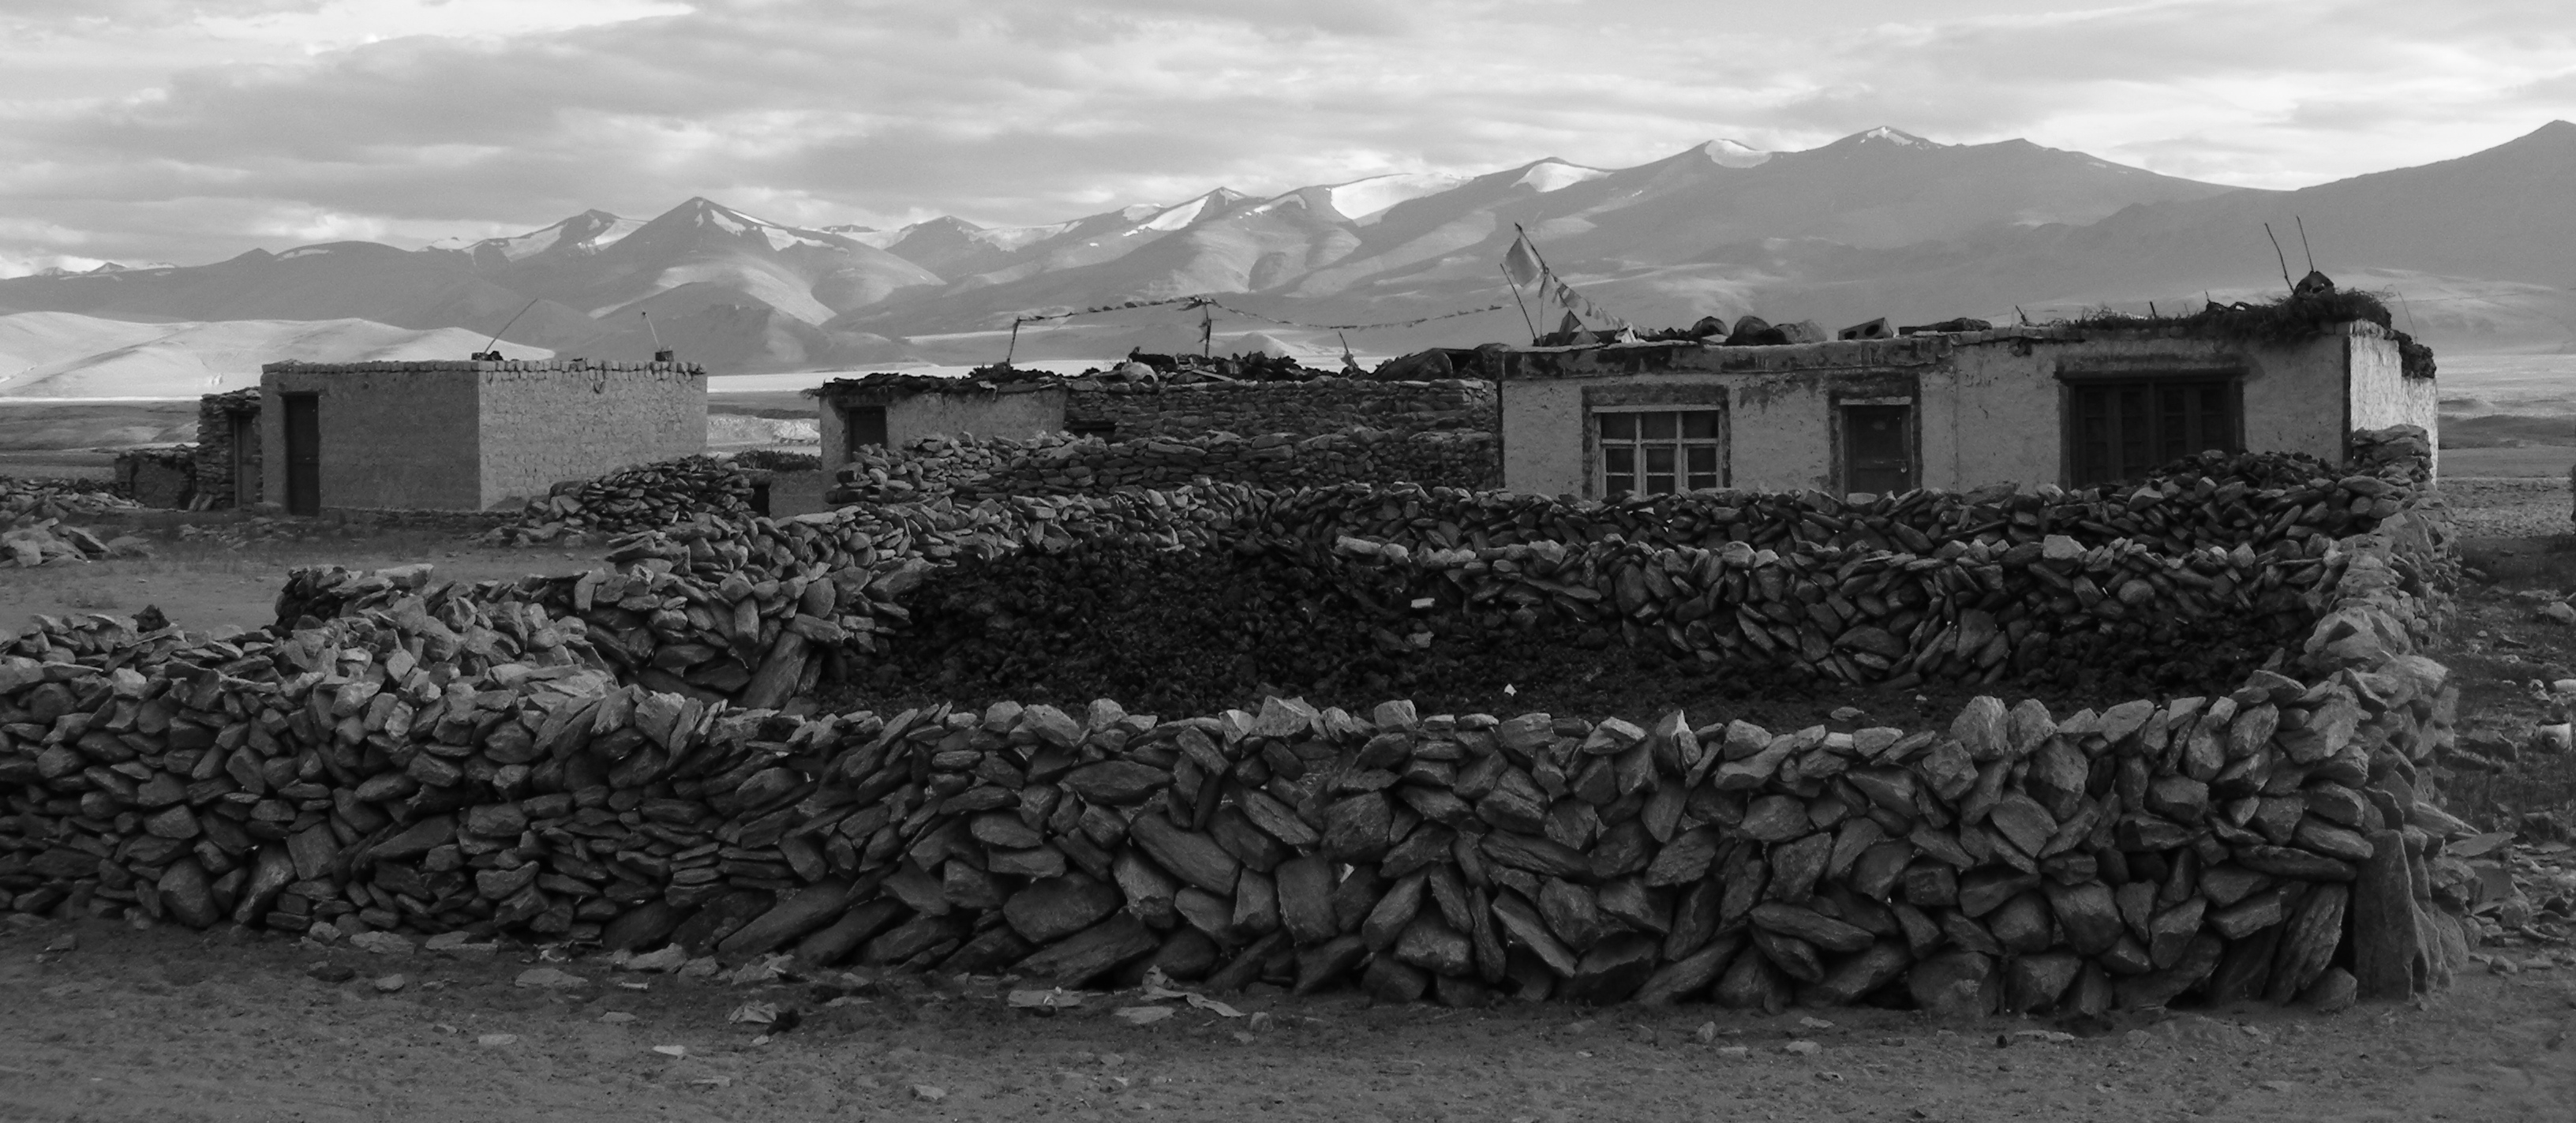 Nomad village in Ladakh, India.